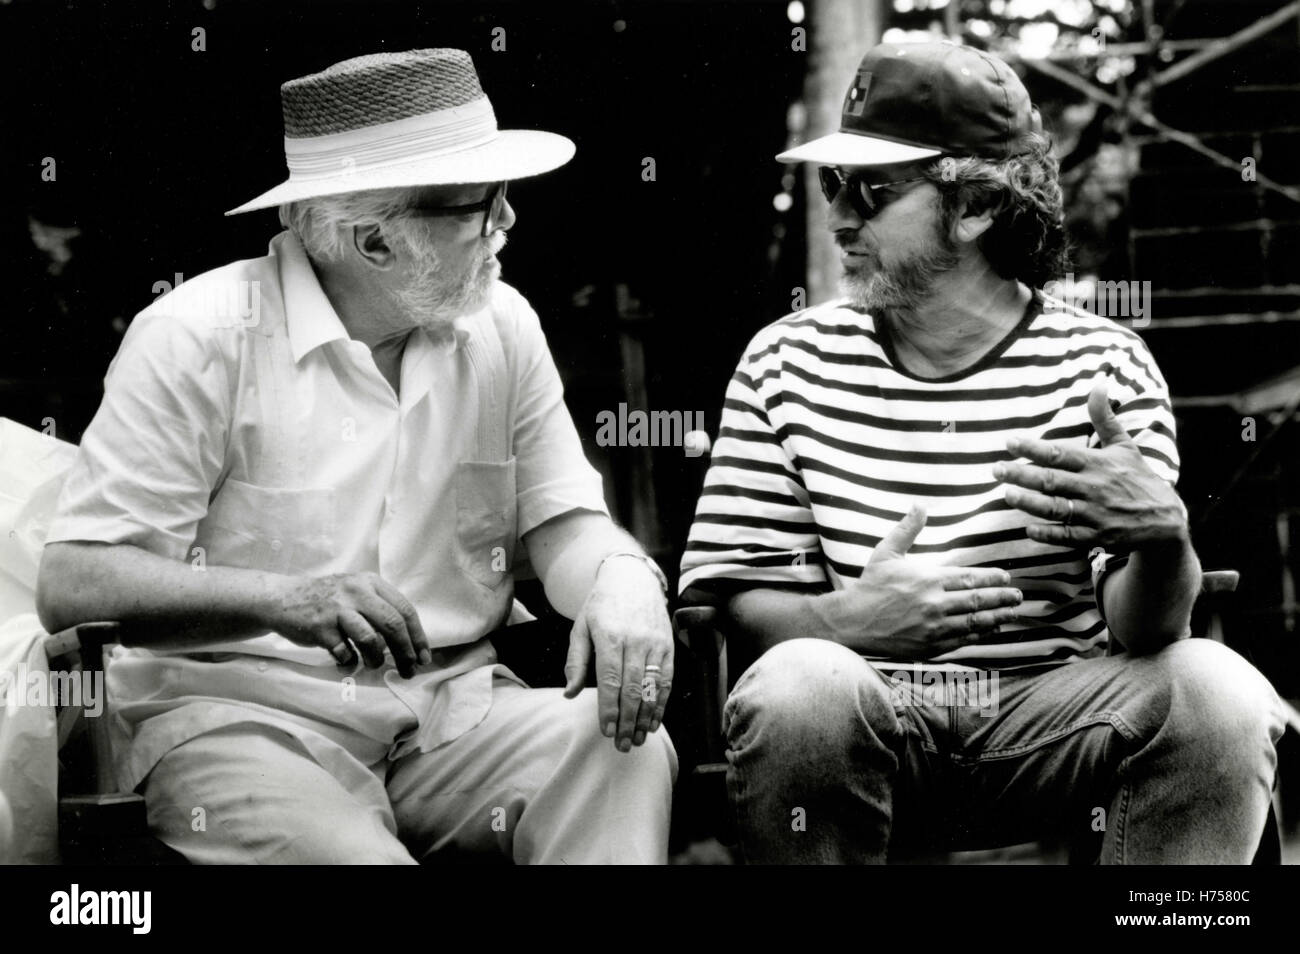 Steven Spielberg and Richard Attenborough on the set of Jurassic Park, USA 1993 - Stock Image